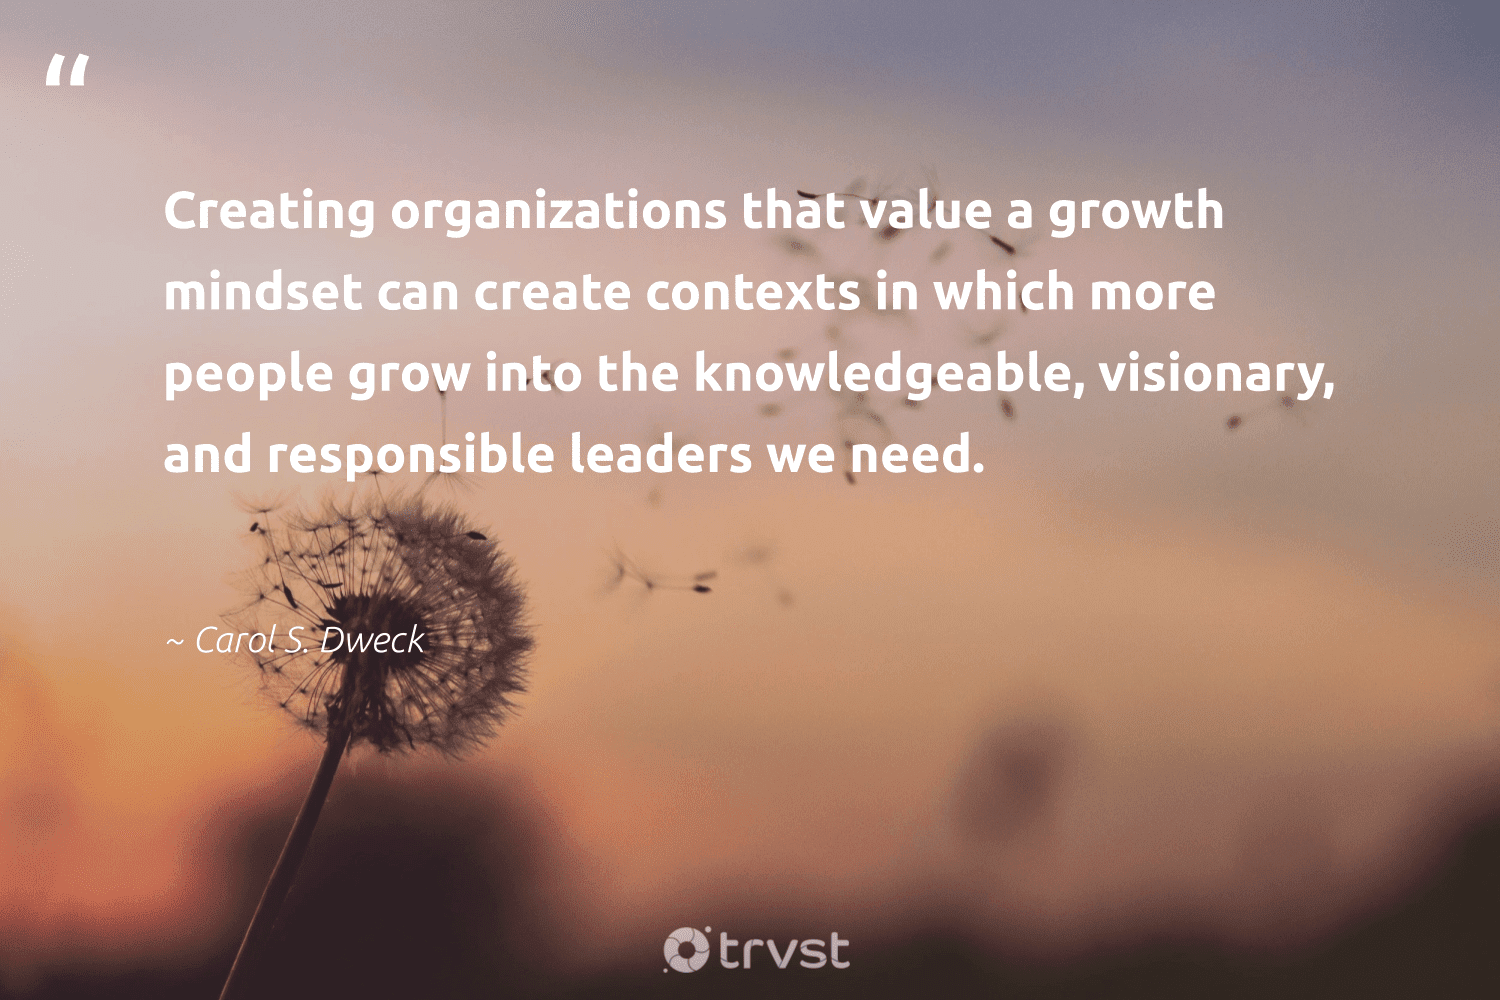 """""""Creating organizations that value a growth mindset can create contexts in which more people grow into the knowledgeable, visionary, and responsible leaders we need.""""  - Carol S. Dweck #trvst #quotes #mindset #growthmindset #goals #motivation #nevergiveup #begreat #takeaction #mindful #meditate #changemakers"""